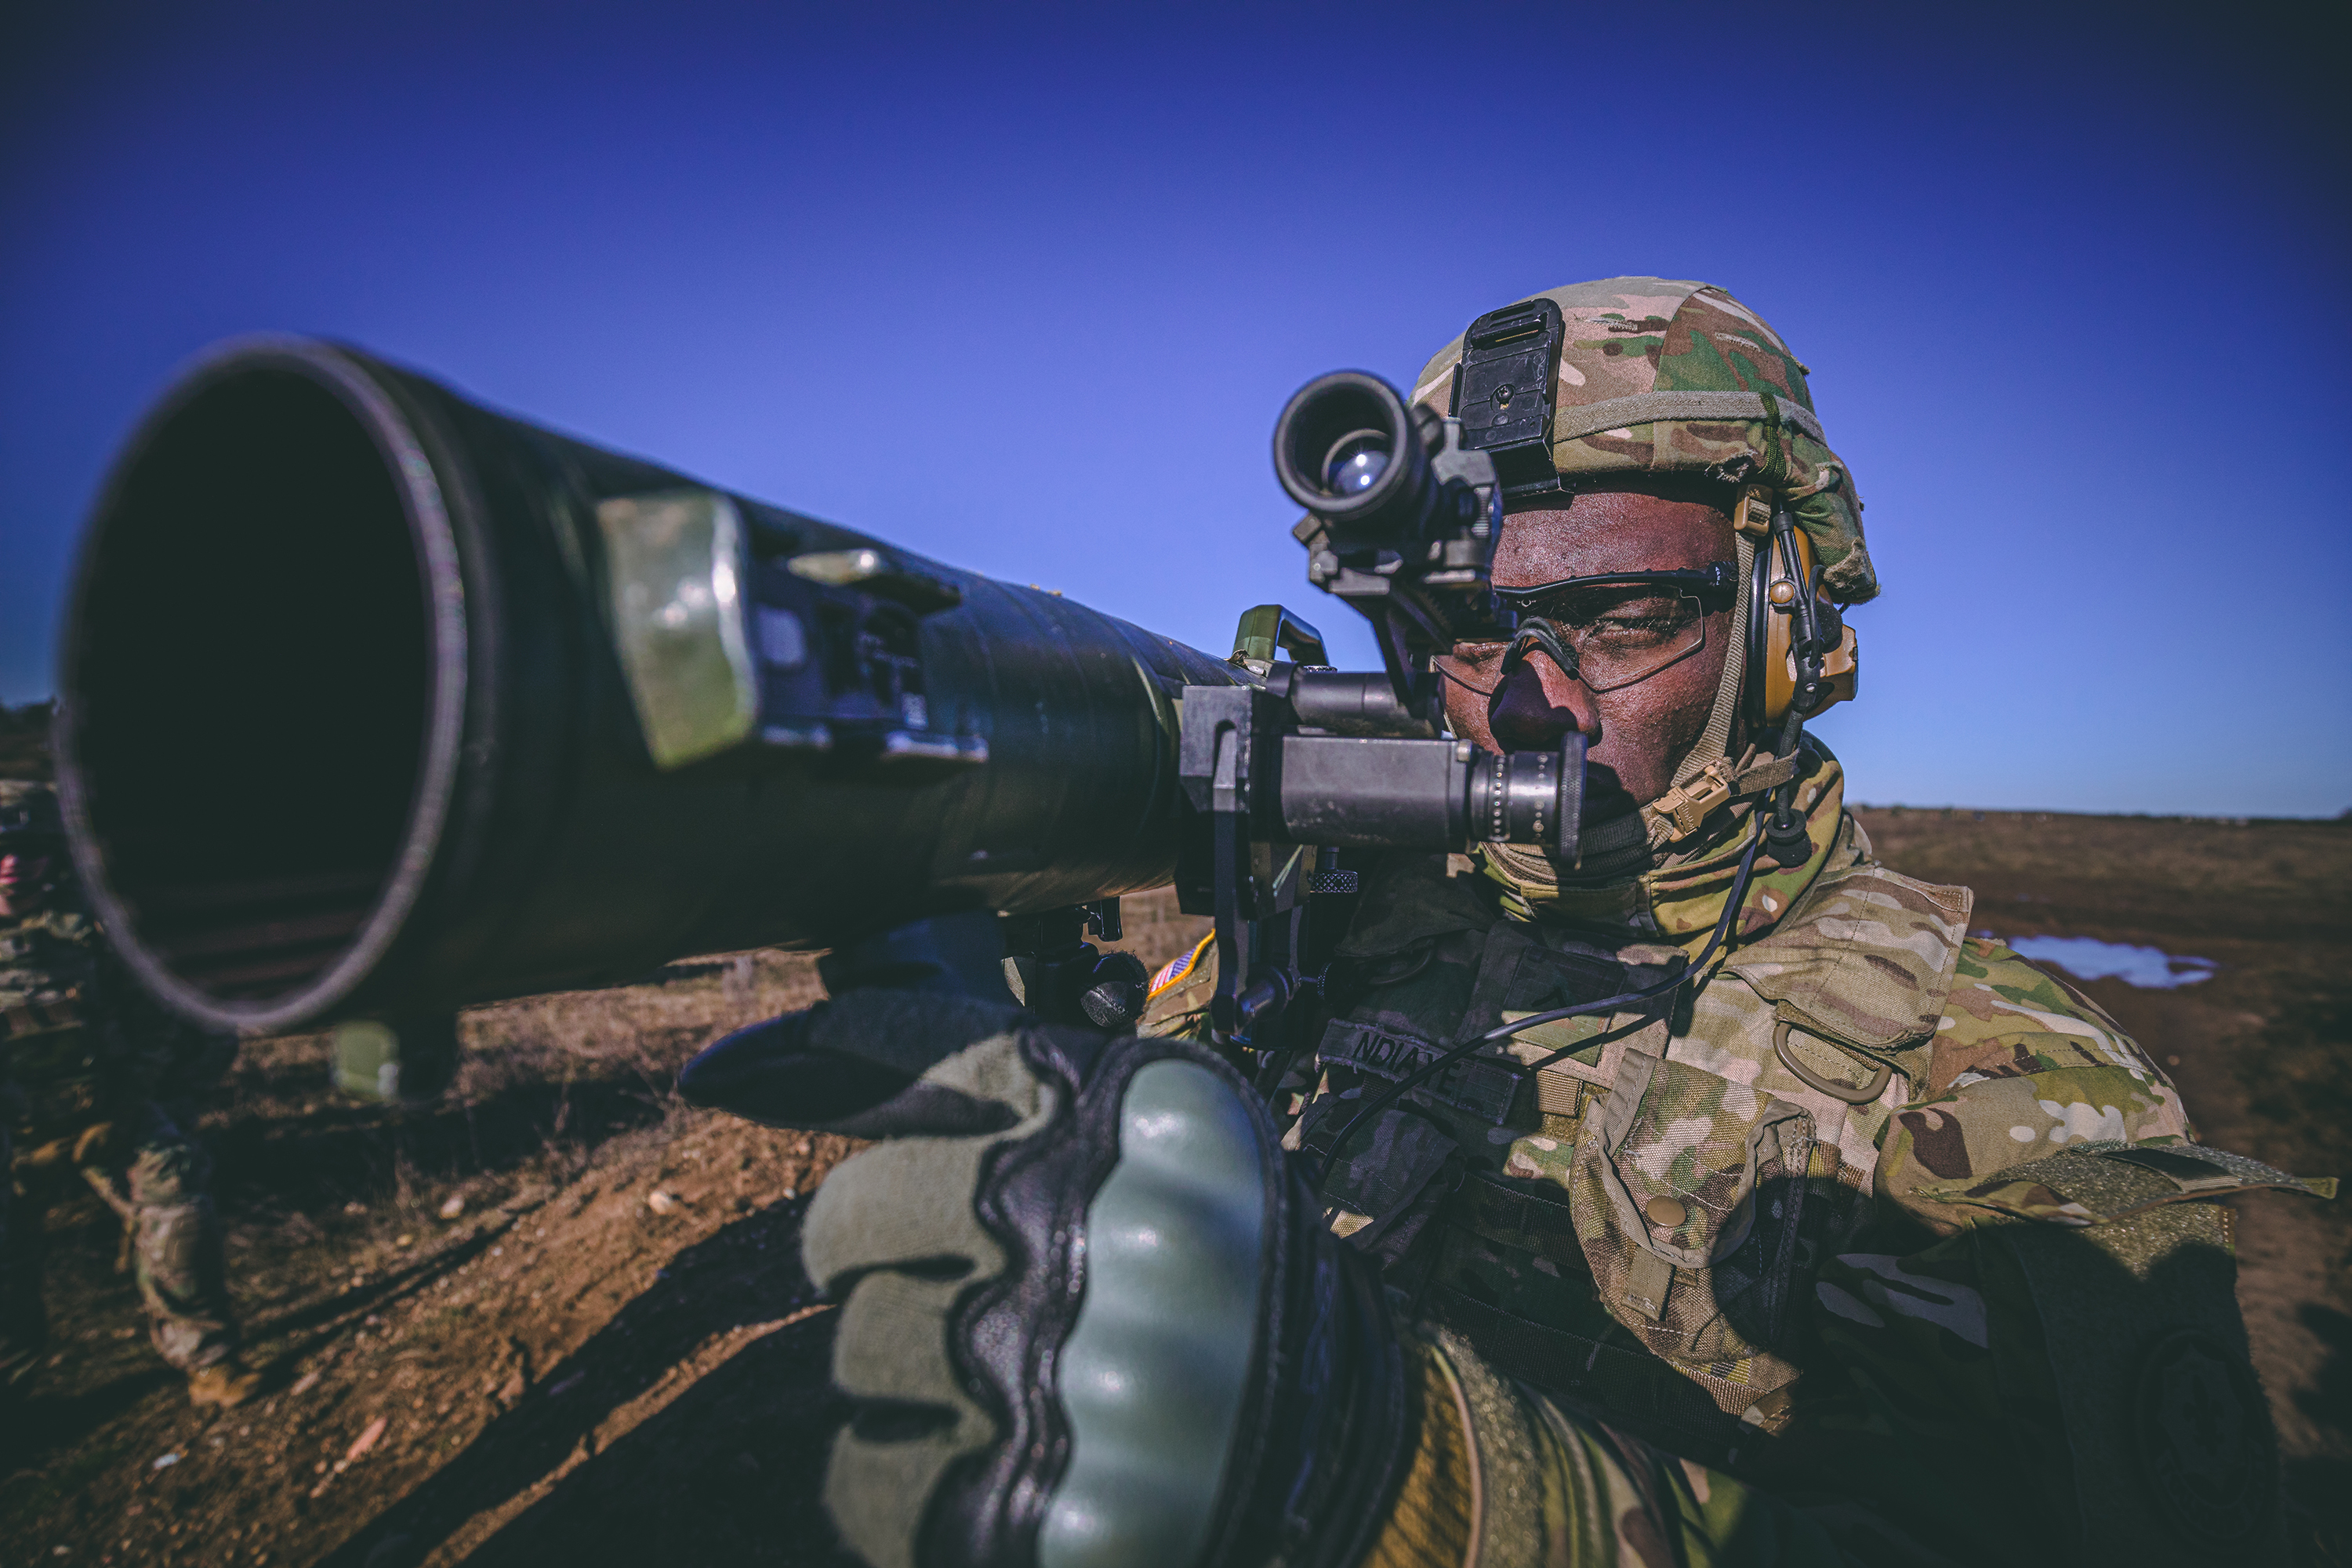 A U.S. soldier prepares to fire an M3 Carl Gustaf 84mm recoiless rifle on Jan. 31, 2020, during an anti-tank training course in support of NATO's enhanced Forward Presence Battle Group Poland in Bemowo Piskie, Poland. (Sgt. Timothy Hamlin/Army)